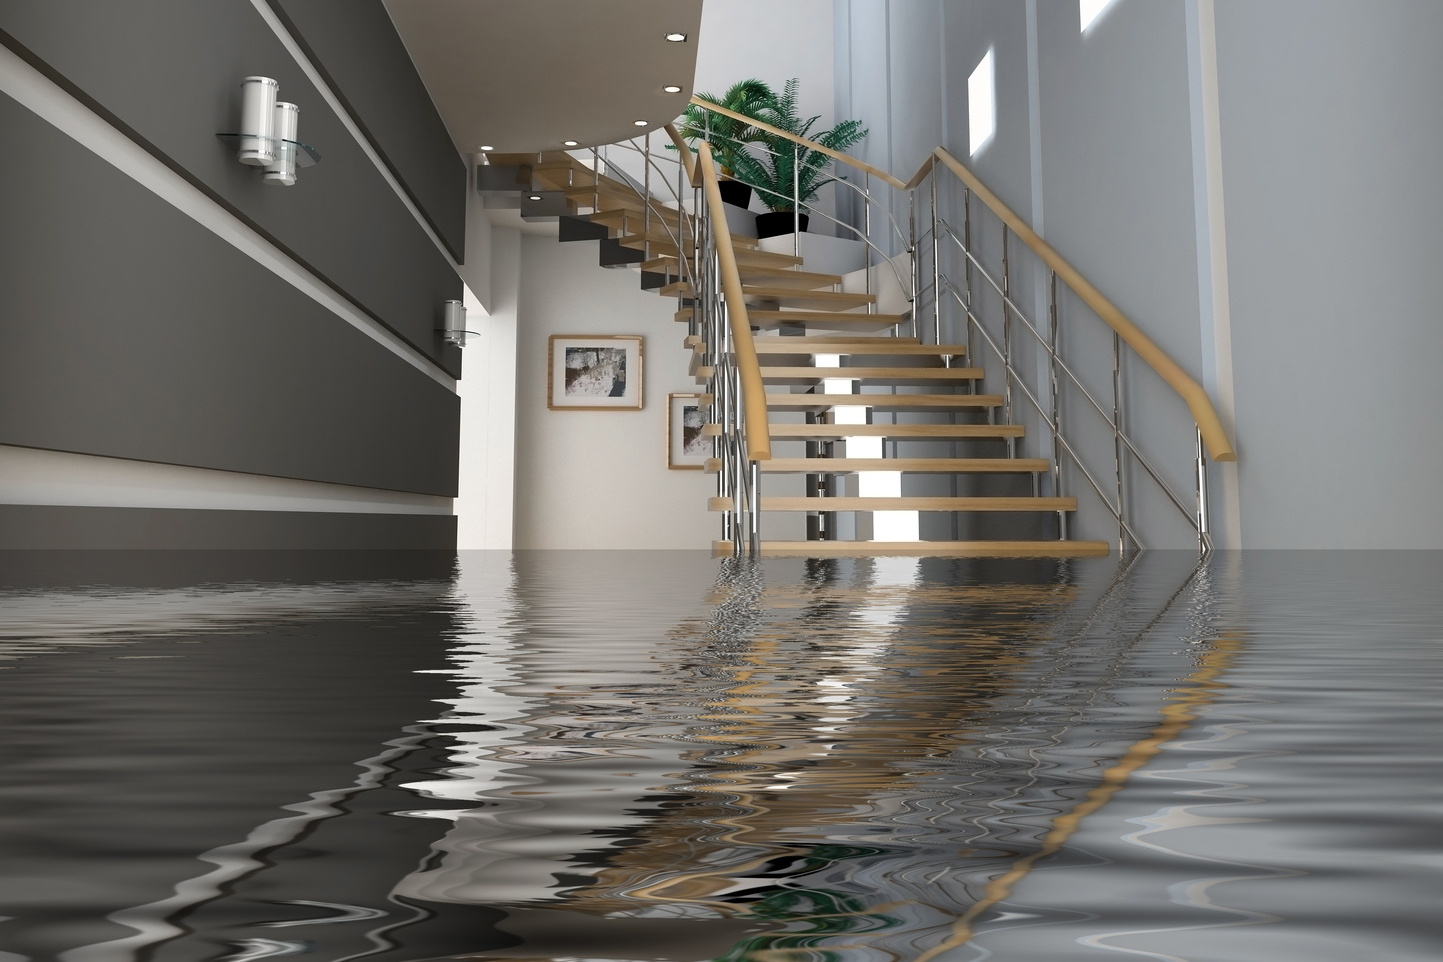 SI-Flood Sensor - Ensuring an Indoor Flood can be Responded to in Minutes